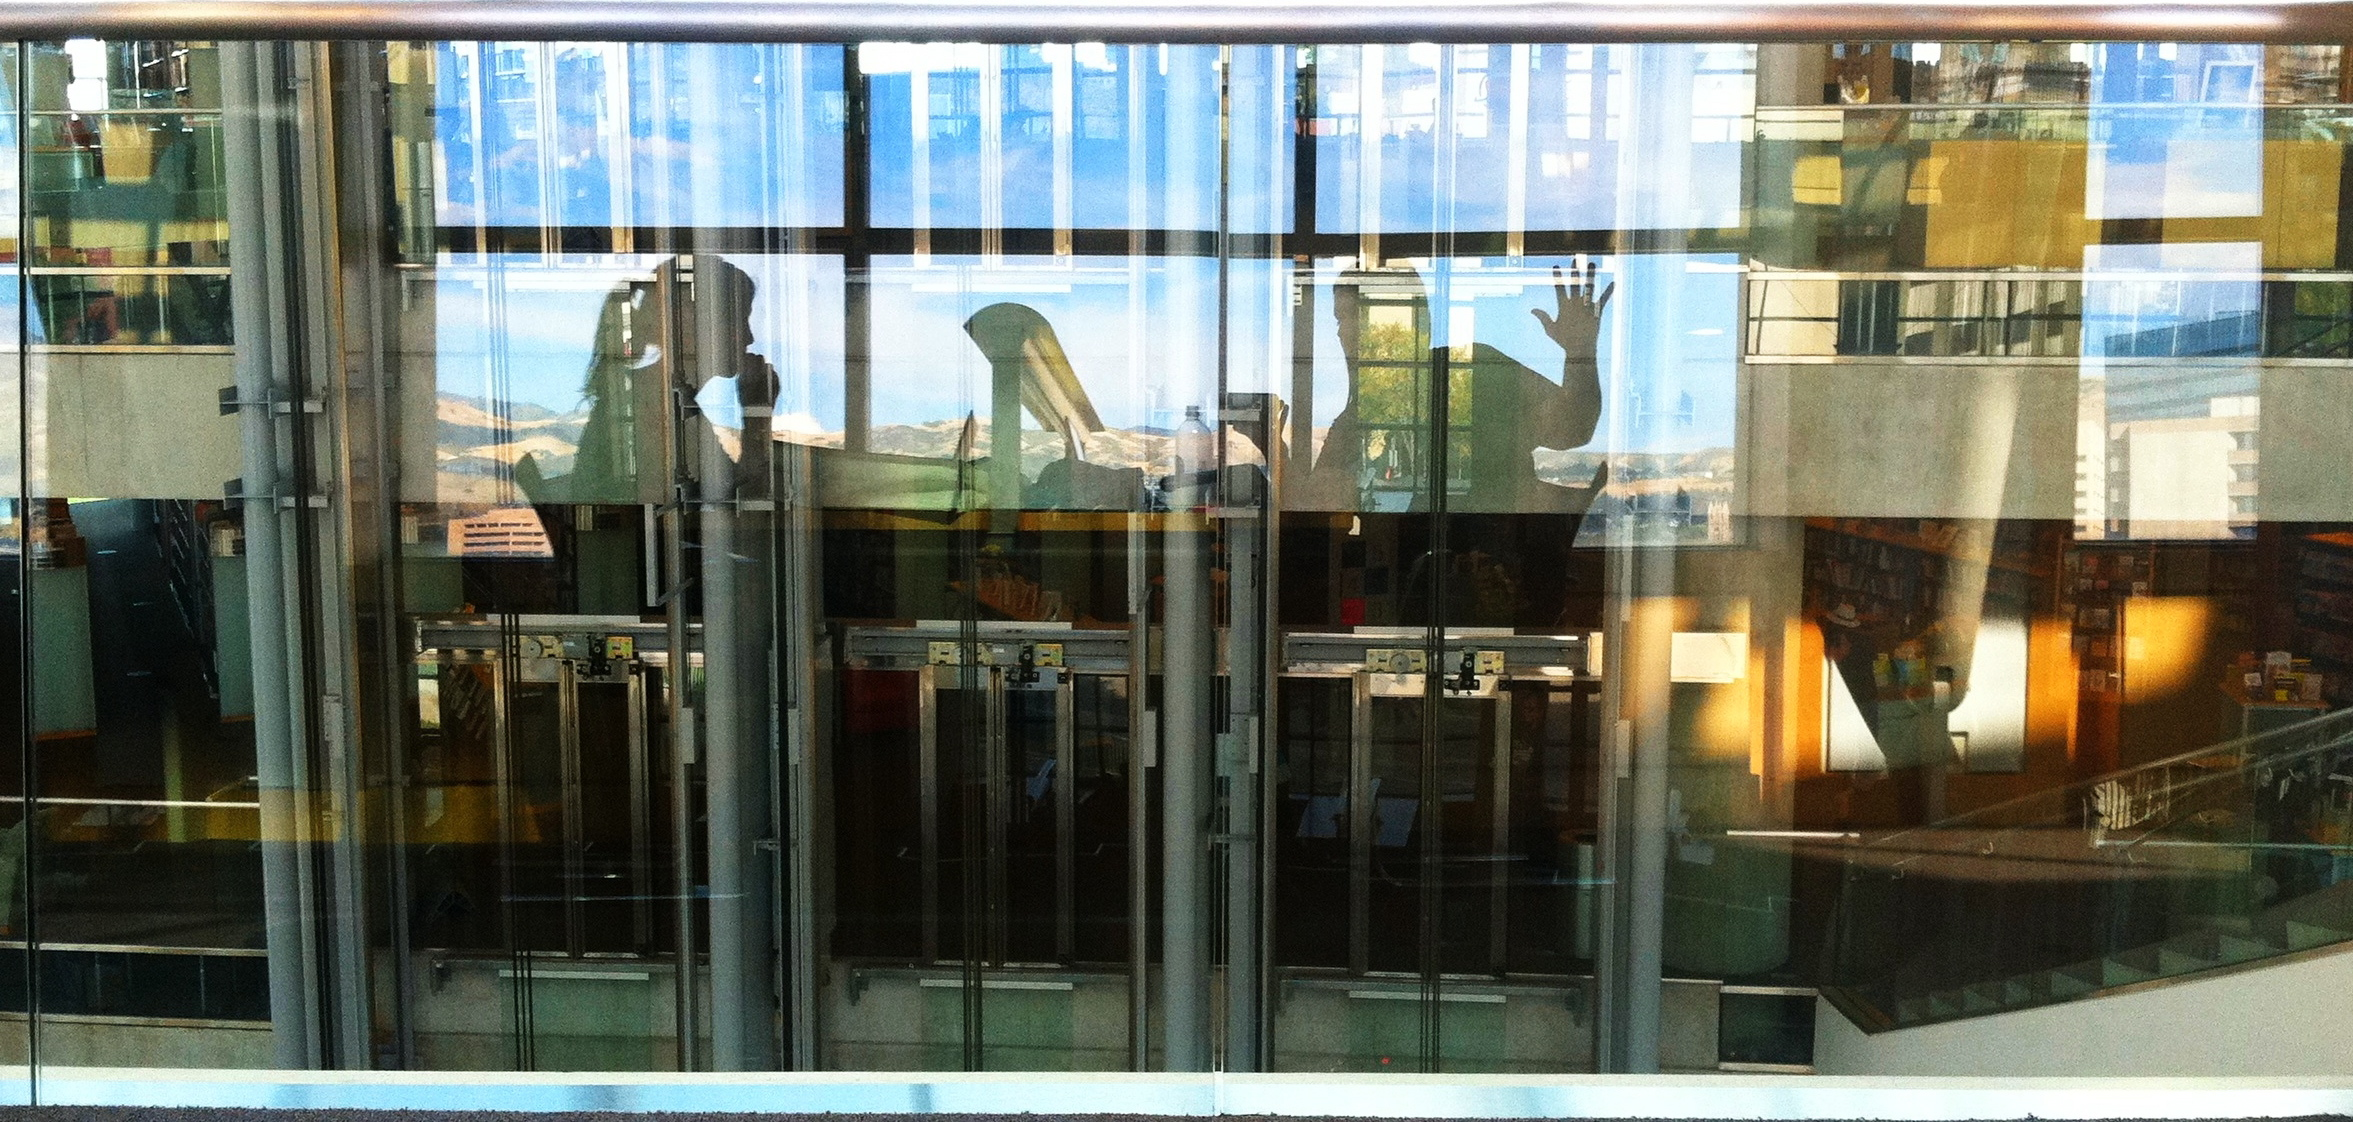 Salt Lake City Library Reflection